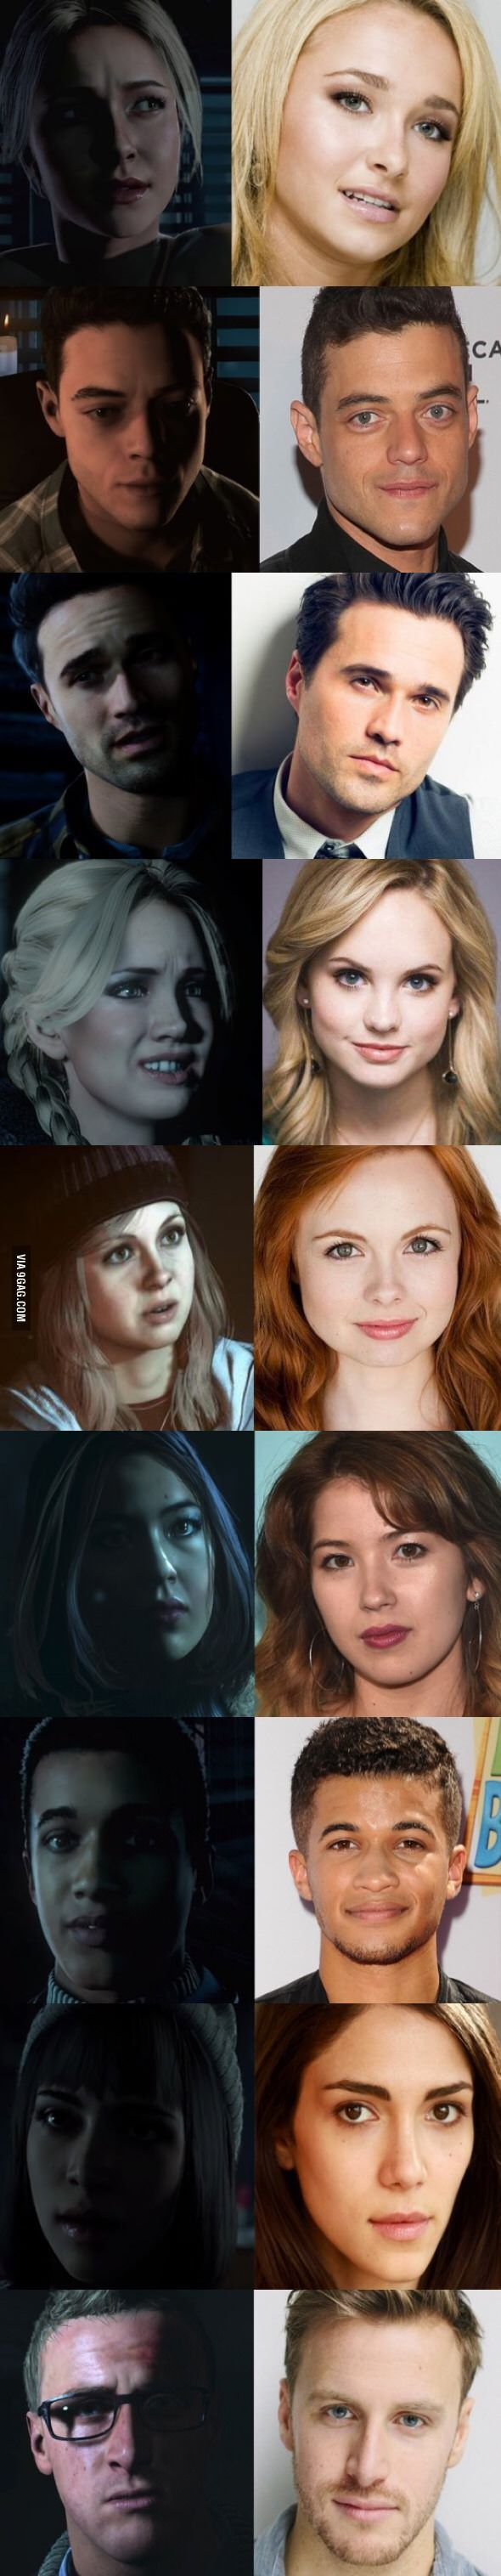 The celebrities play and voice the character they look like in the game Until Dawn